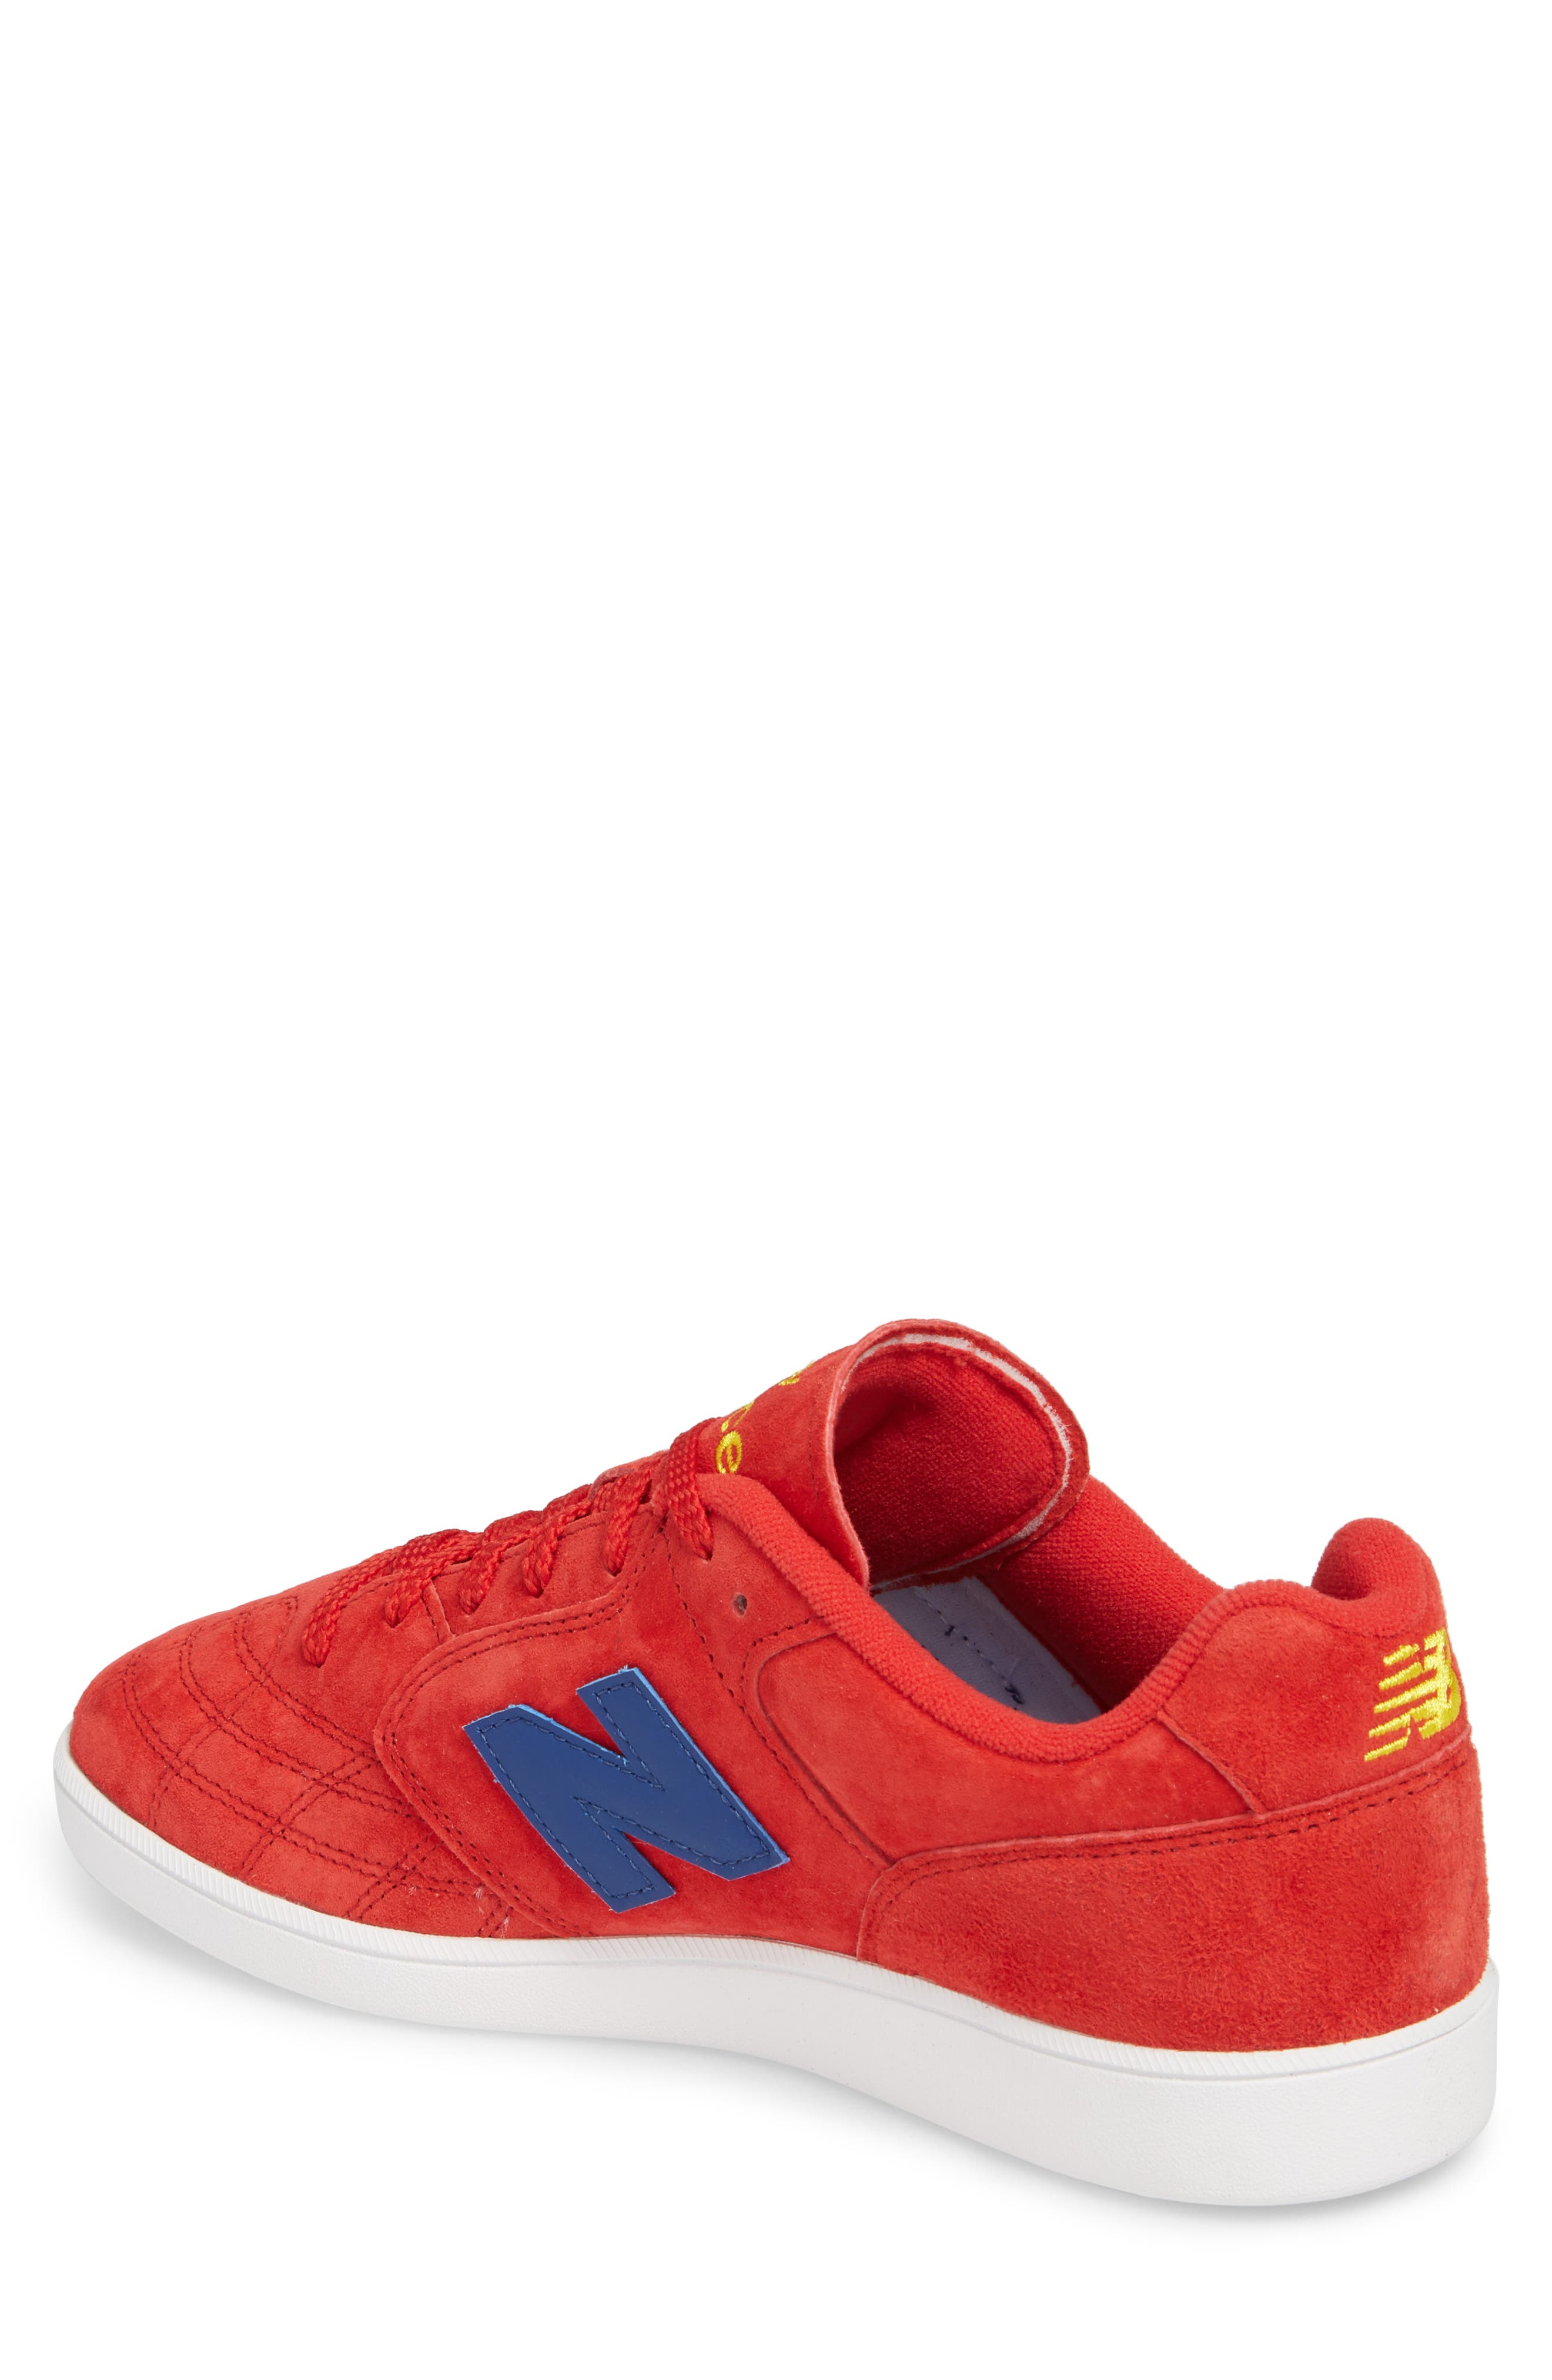 Epic Trainer Sneaker,                             Alternate thumbnail 2, color,                             Red